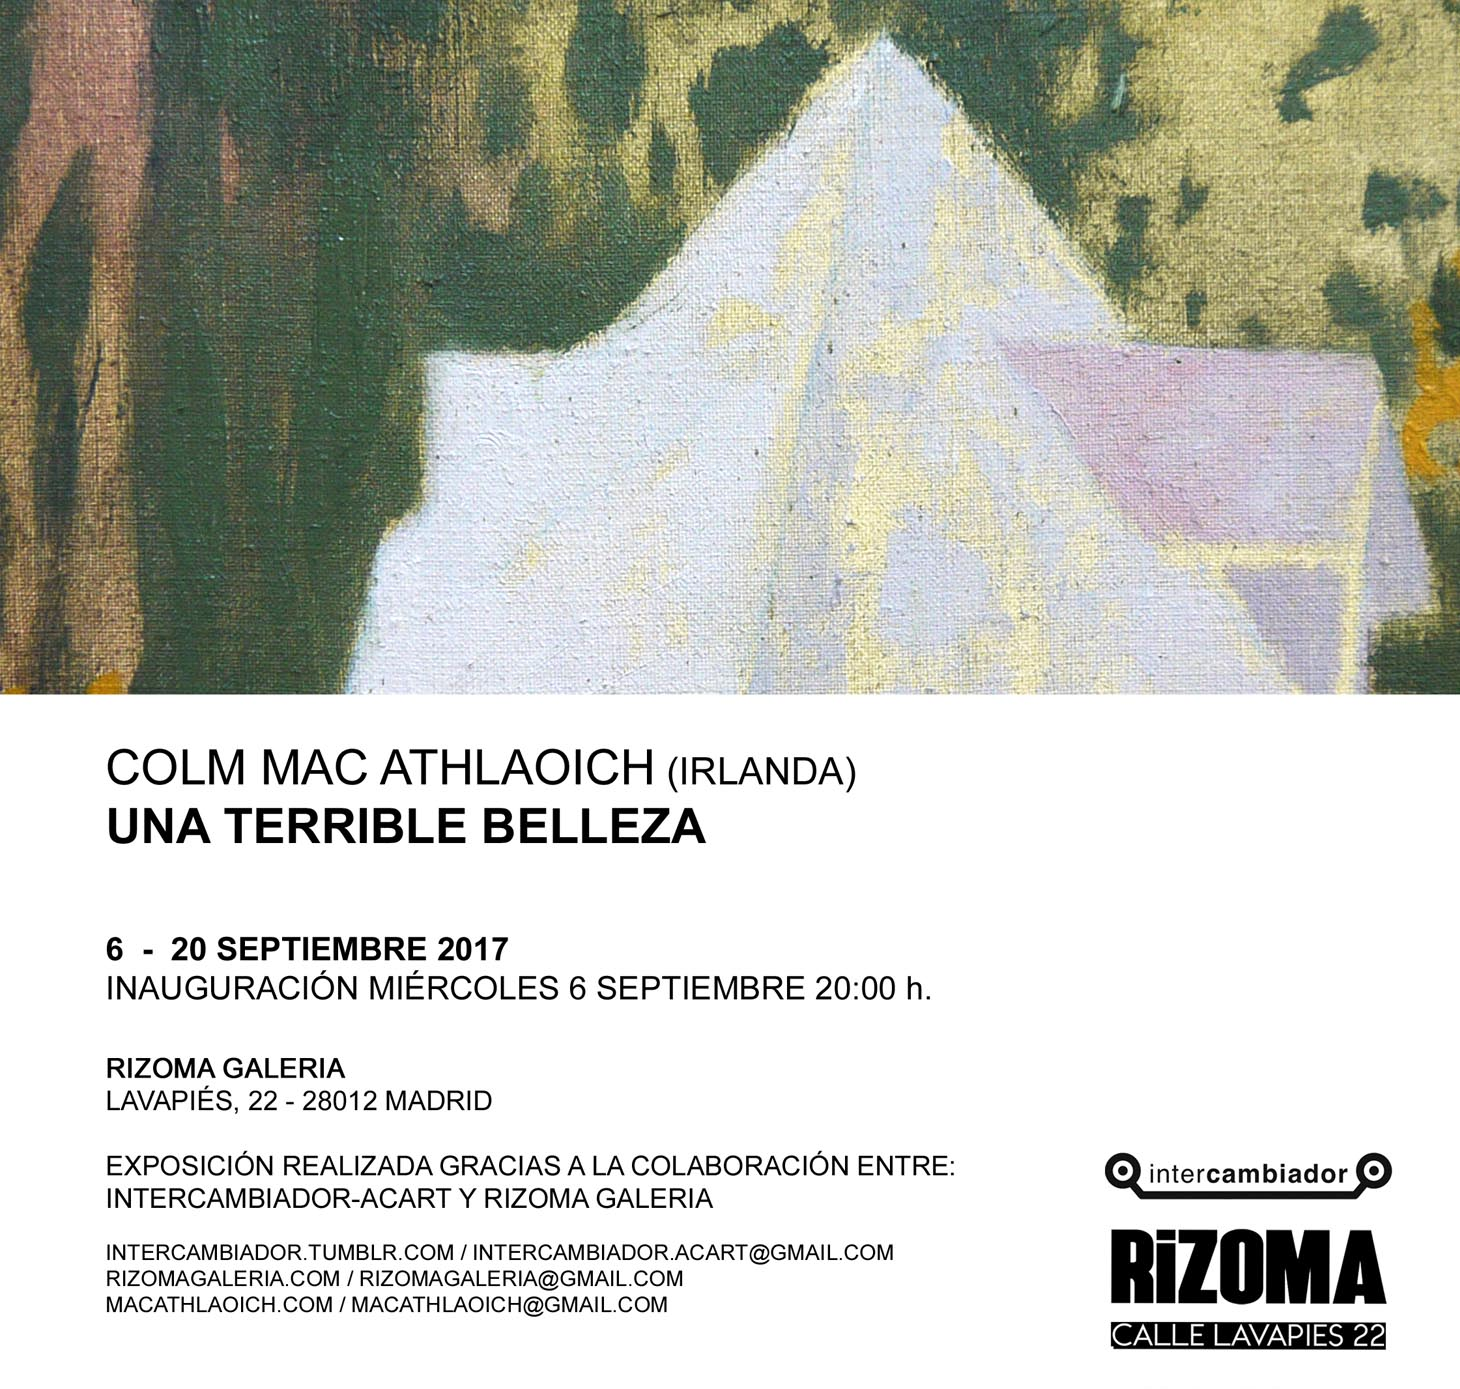 Una Terrible Belleza  6th September 2017 Rizoma Galeria, Lavapies, Madrid  Madrid, Spain